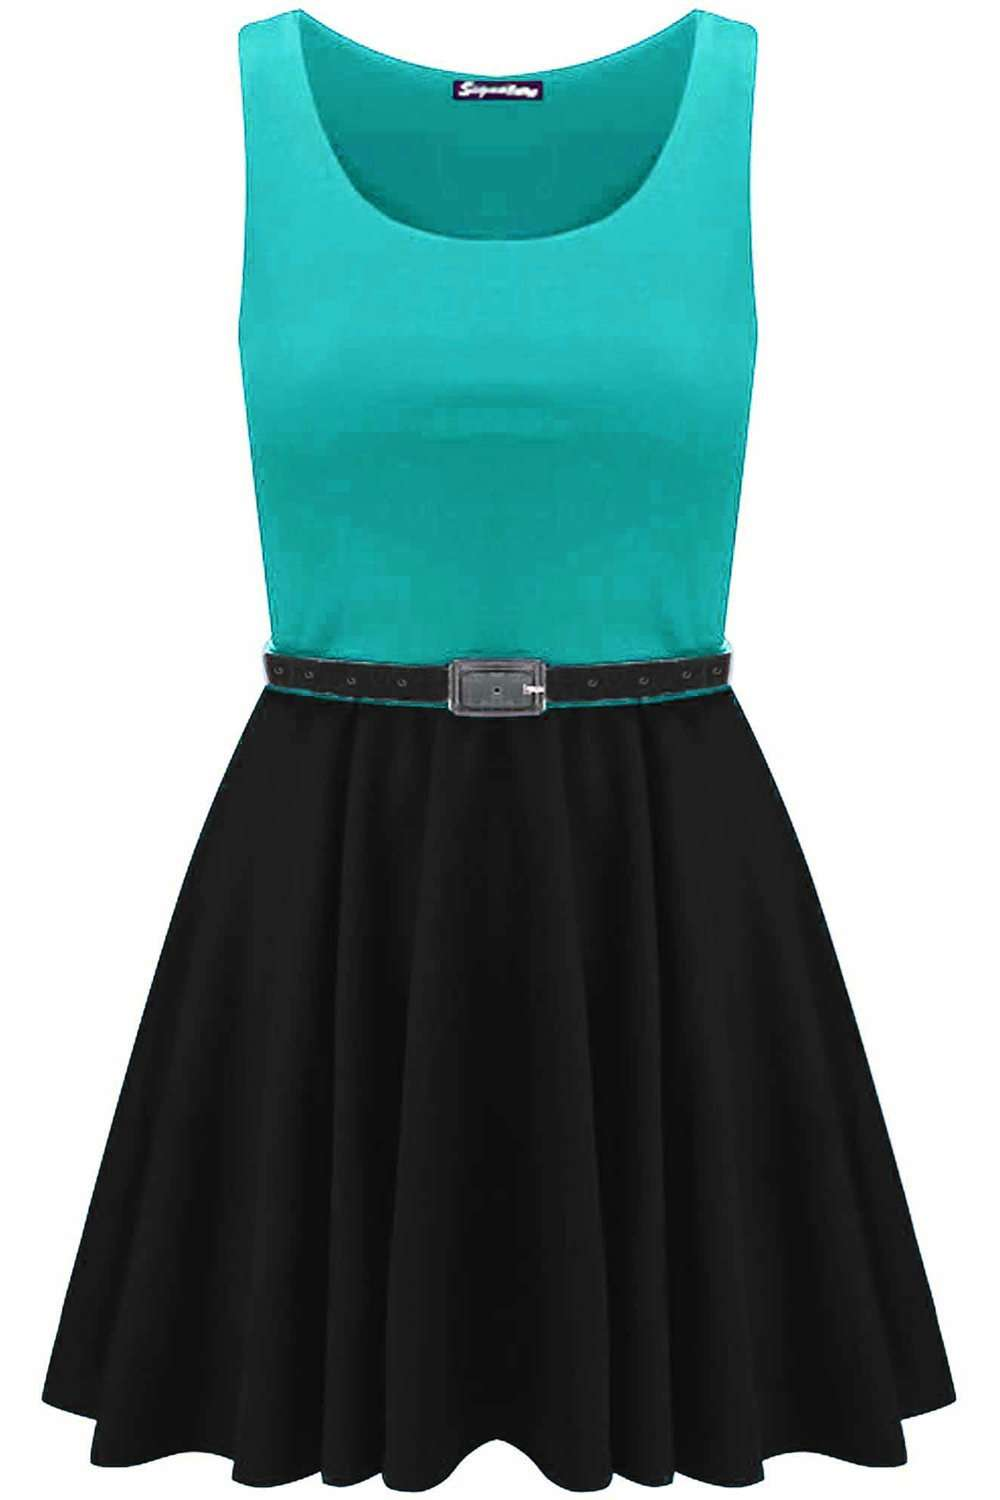 Ilizia Colour Block Sleeveless Skater Dress - bejealous-com